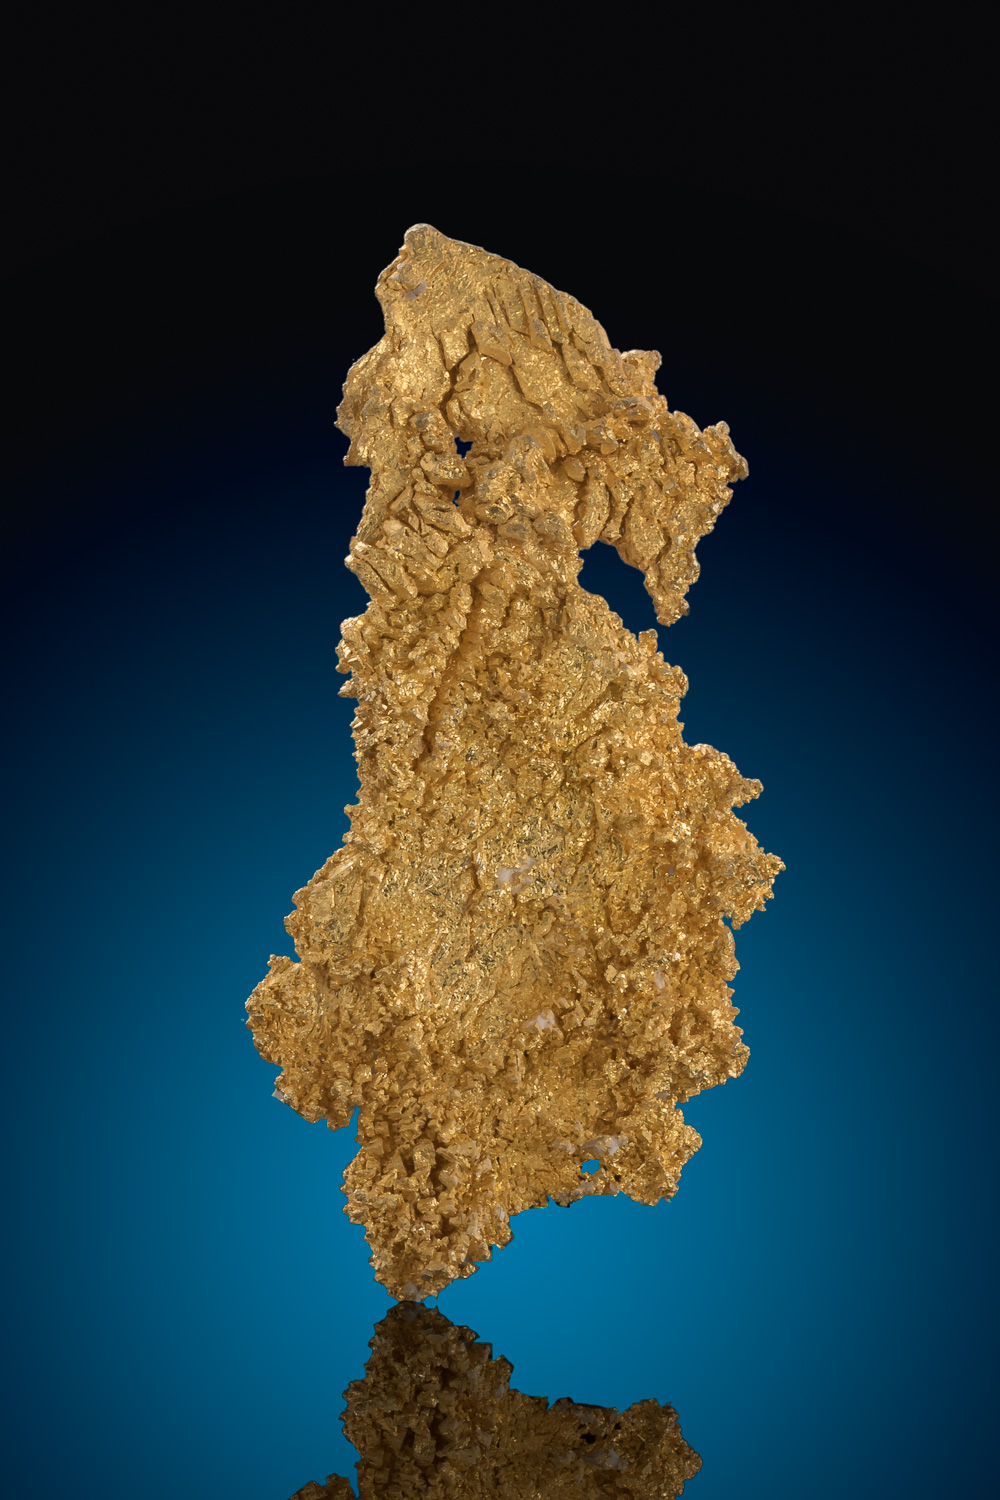 Bright Buttery Gold - Well Crystalized Natural Gold Specimen